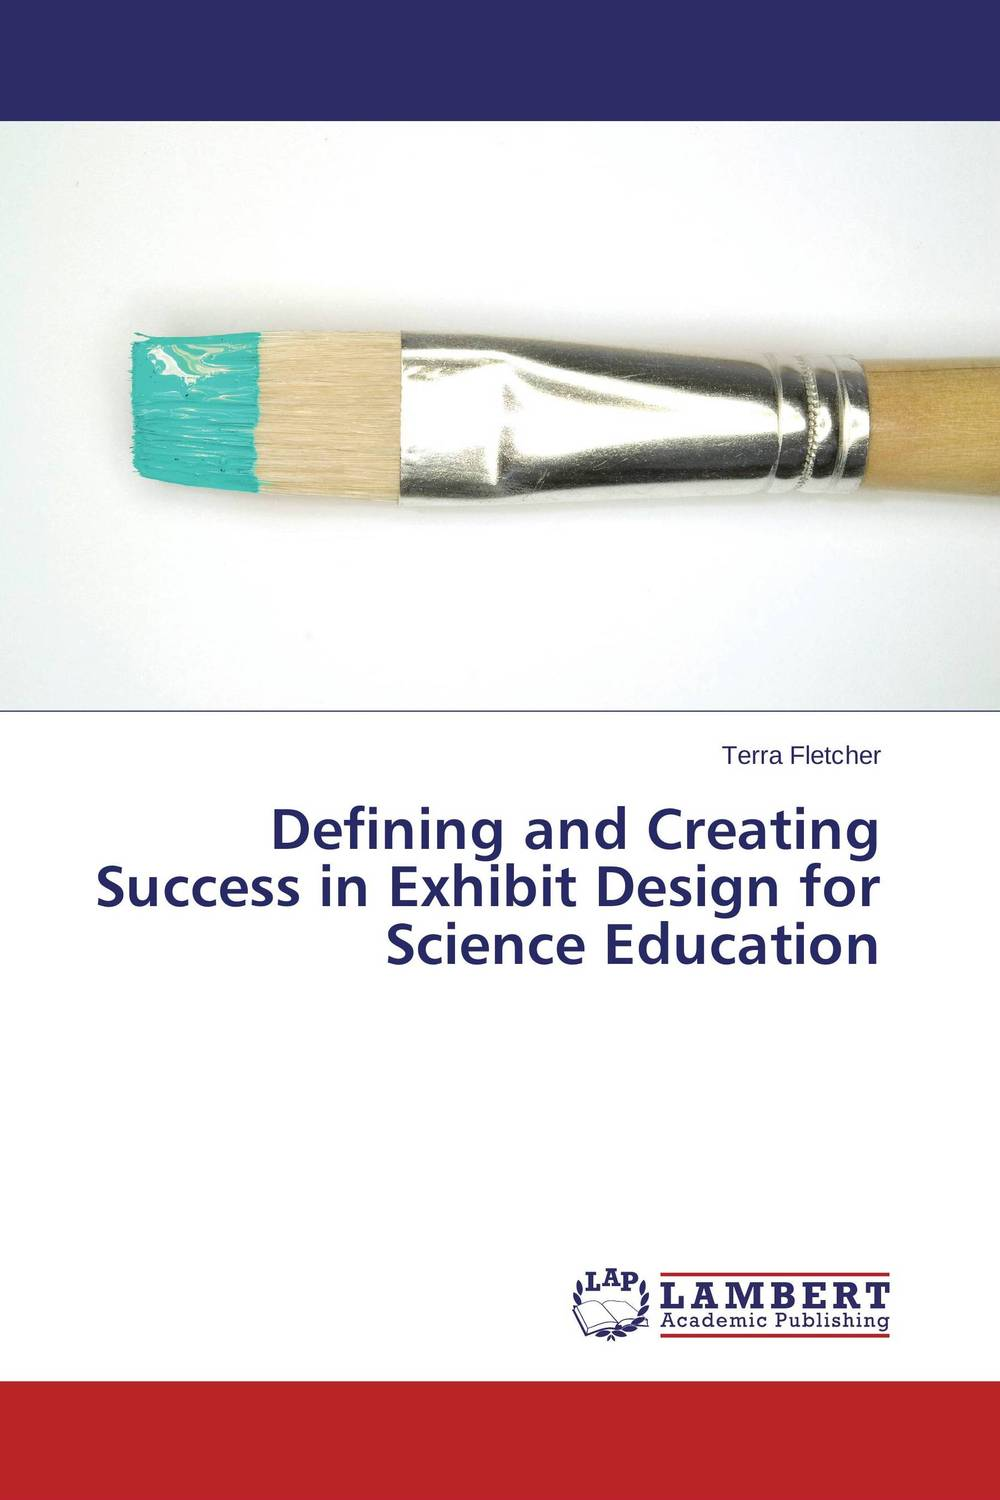 Defining and Creating Success in Exhibit Design for Science Education voluntary associations in tsarist russia – science patriotism and civil society